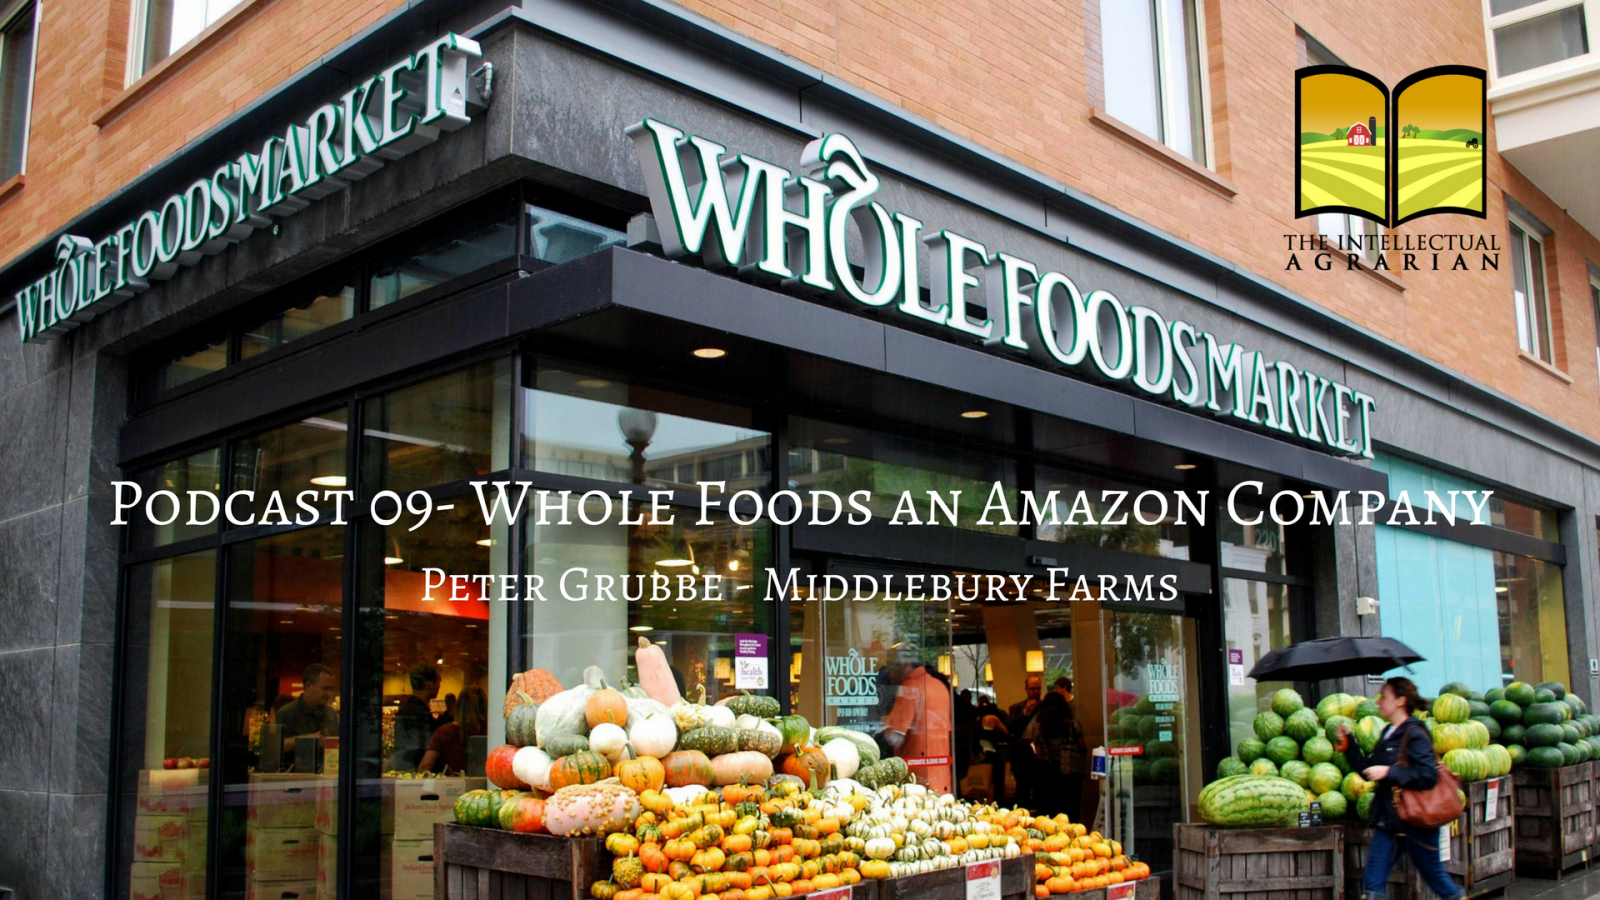 Podcast 09: Whole Foods, An Amazon Company   Peter Grubbe – Middlebury Farms